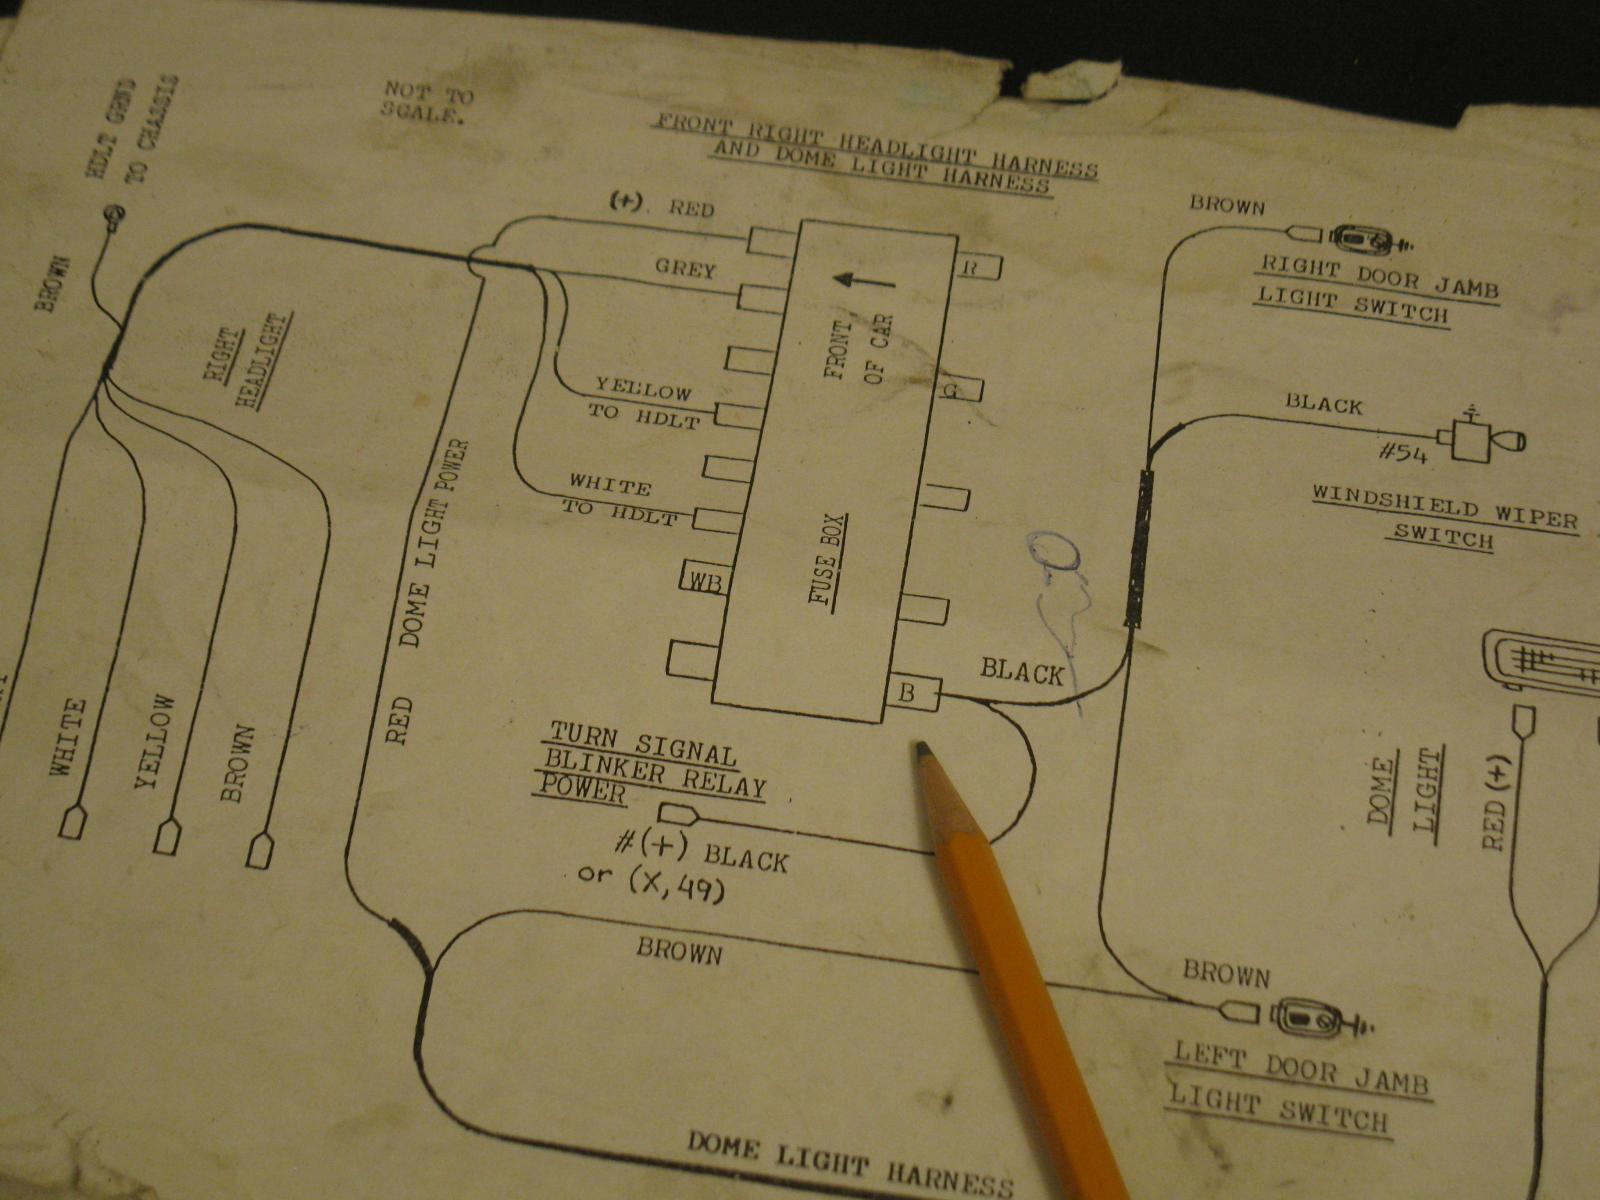 Gallery 1989 Wiring Works Instructions W Mistake P6 Light Switch Mistakes